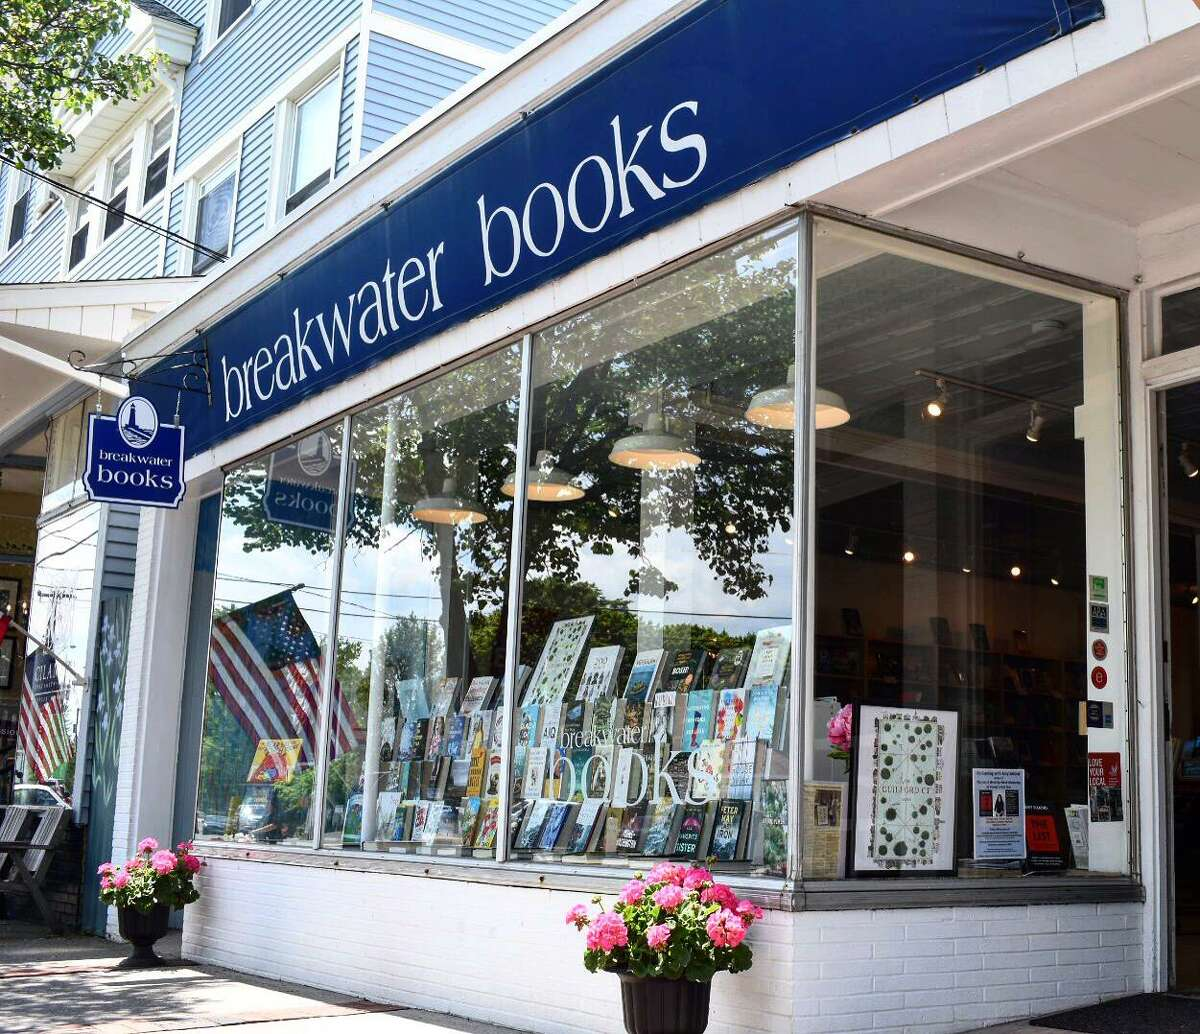 Breakwater Books is located in Guilford. One town over is another longtime bookstore, which has been around for nearly 50 years, Breakwater Books in Guilford, which Richard Parent and Paul Listro bought a year ago. The store already had a strong following but to compete with the growing online market, the new owners expanded its offerings, adding science fiction, graphic novels, romance and classics sections.